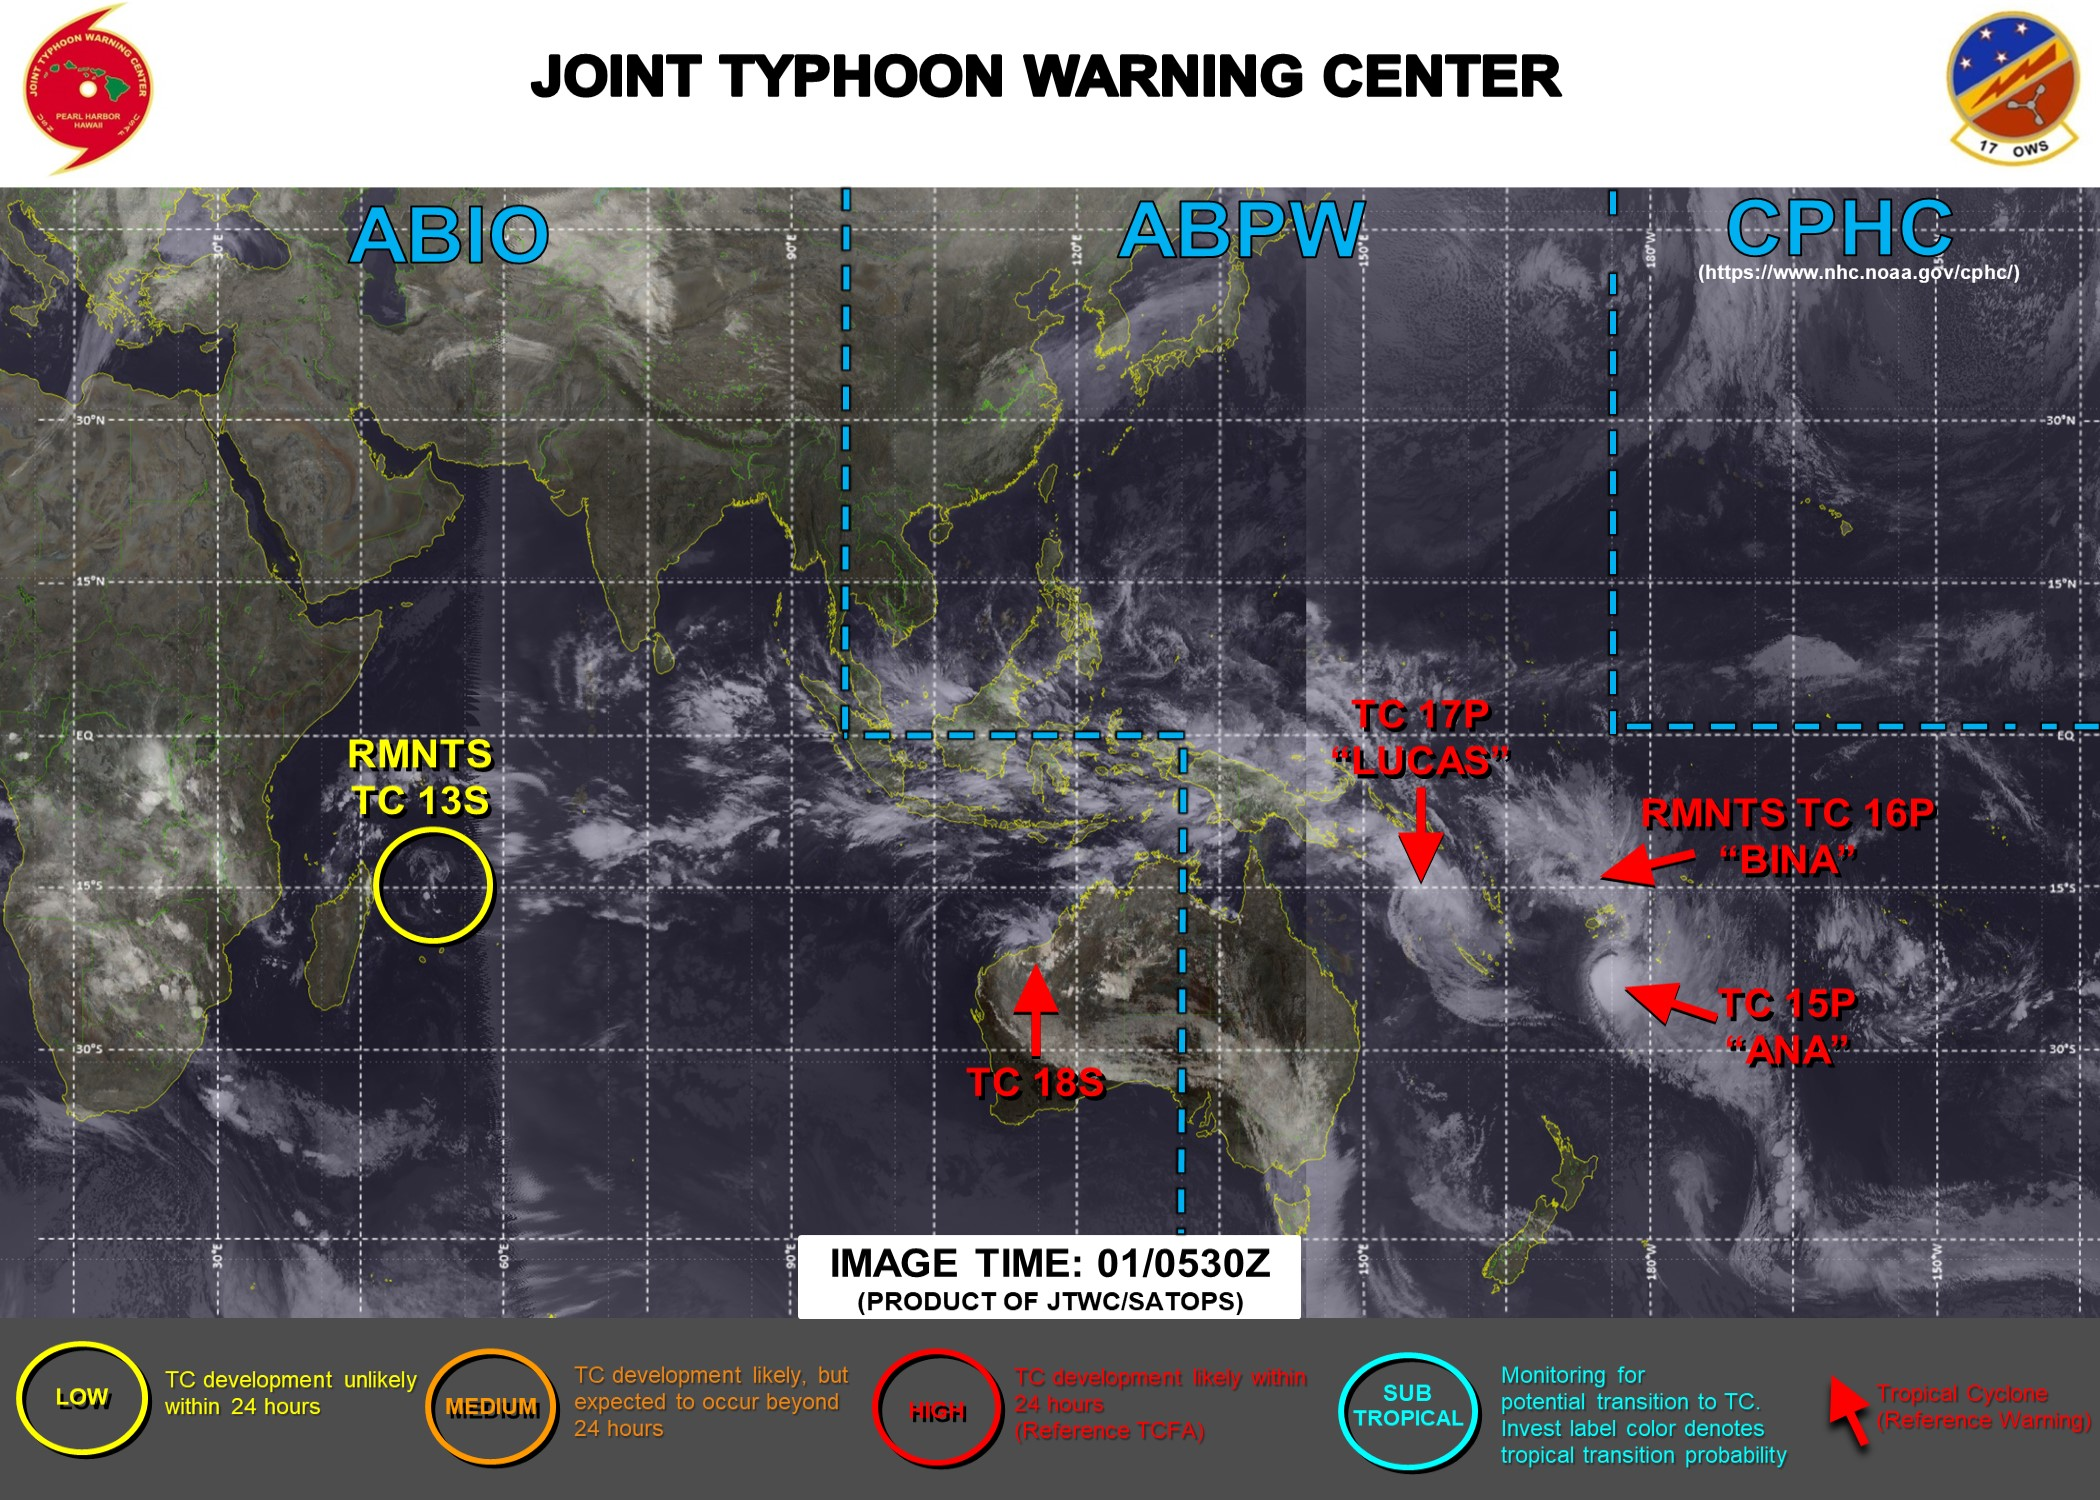 01/06UTC. JTWC IS ISSUING 6HOURLY WARNINGS ON 15P(ANA), 17P(LUCAS), 18S. FINAL WARNING WAS ISSUED AT 01/03UTC FOR 16P(BINA). 3HOURLY SATELLITE BULLETINS ARE PROVIDED FOR 15P,17P,18S WHEREAS THE FINAL FIX FOR 16P WAS ISSUED AT 01/0530UTC.